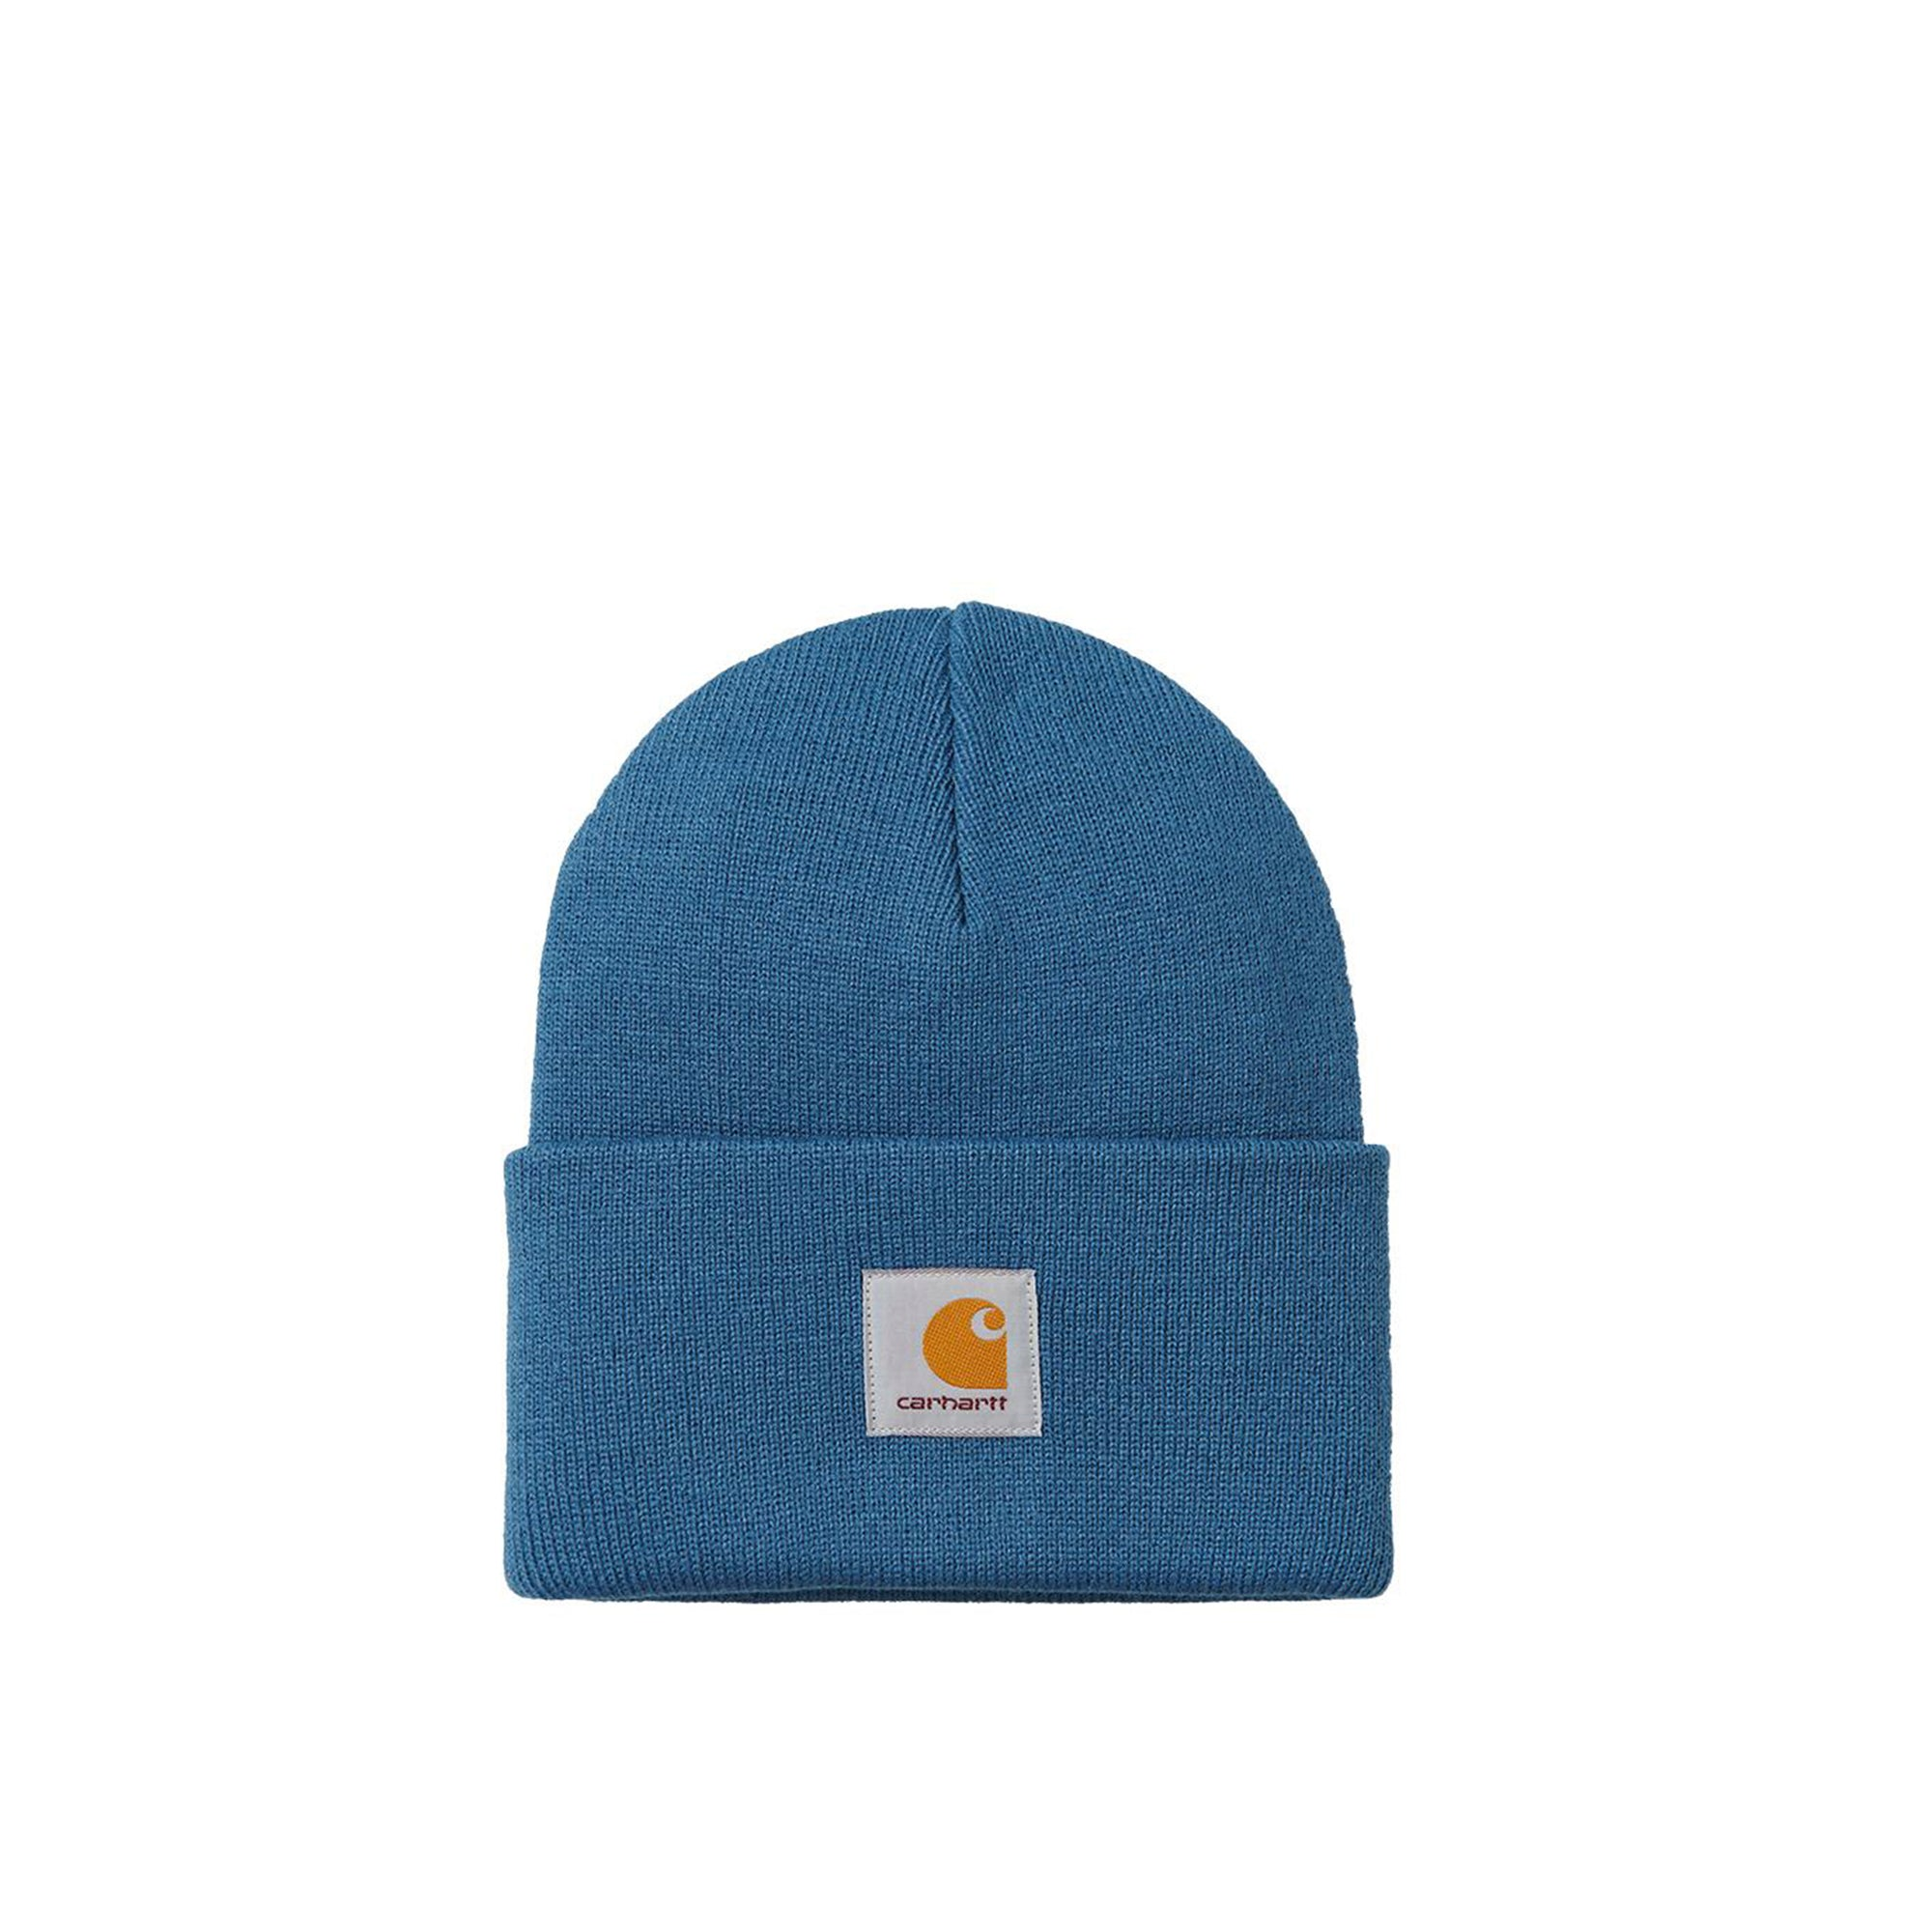 Carhartt WIP Acrylic Watch Hat: Shore - The Union Project